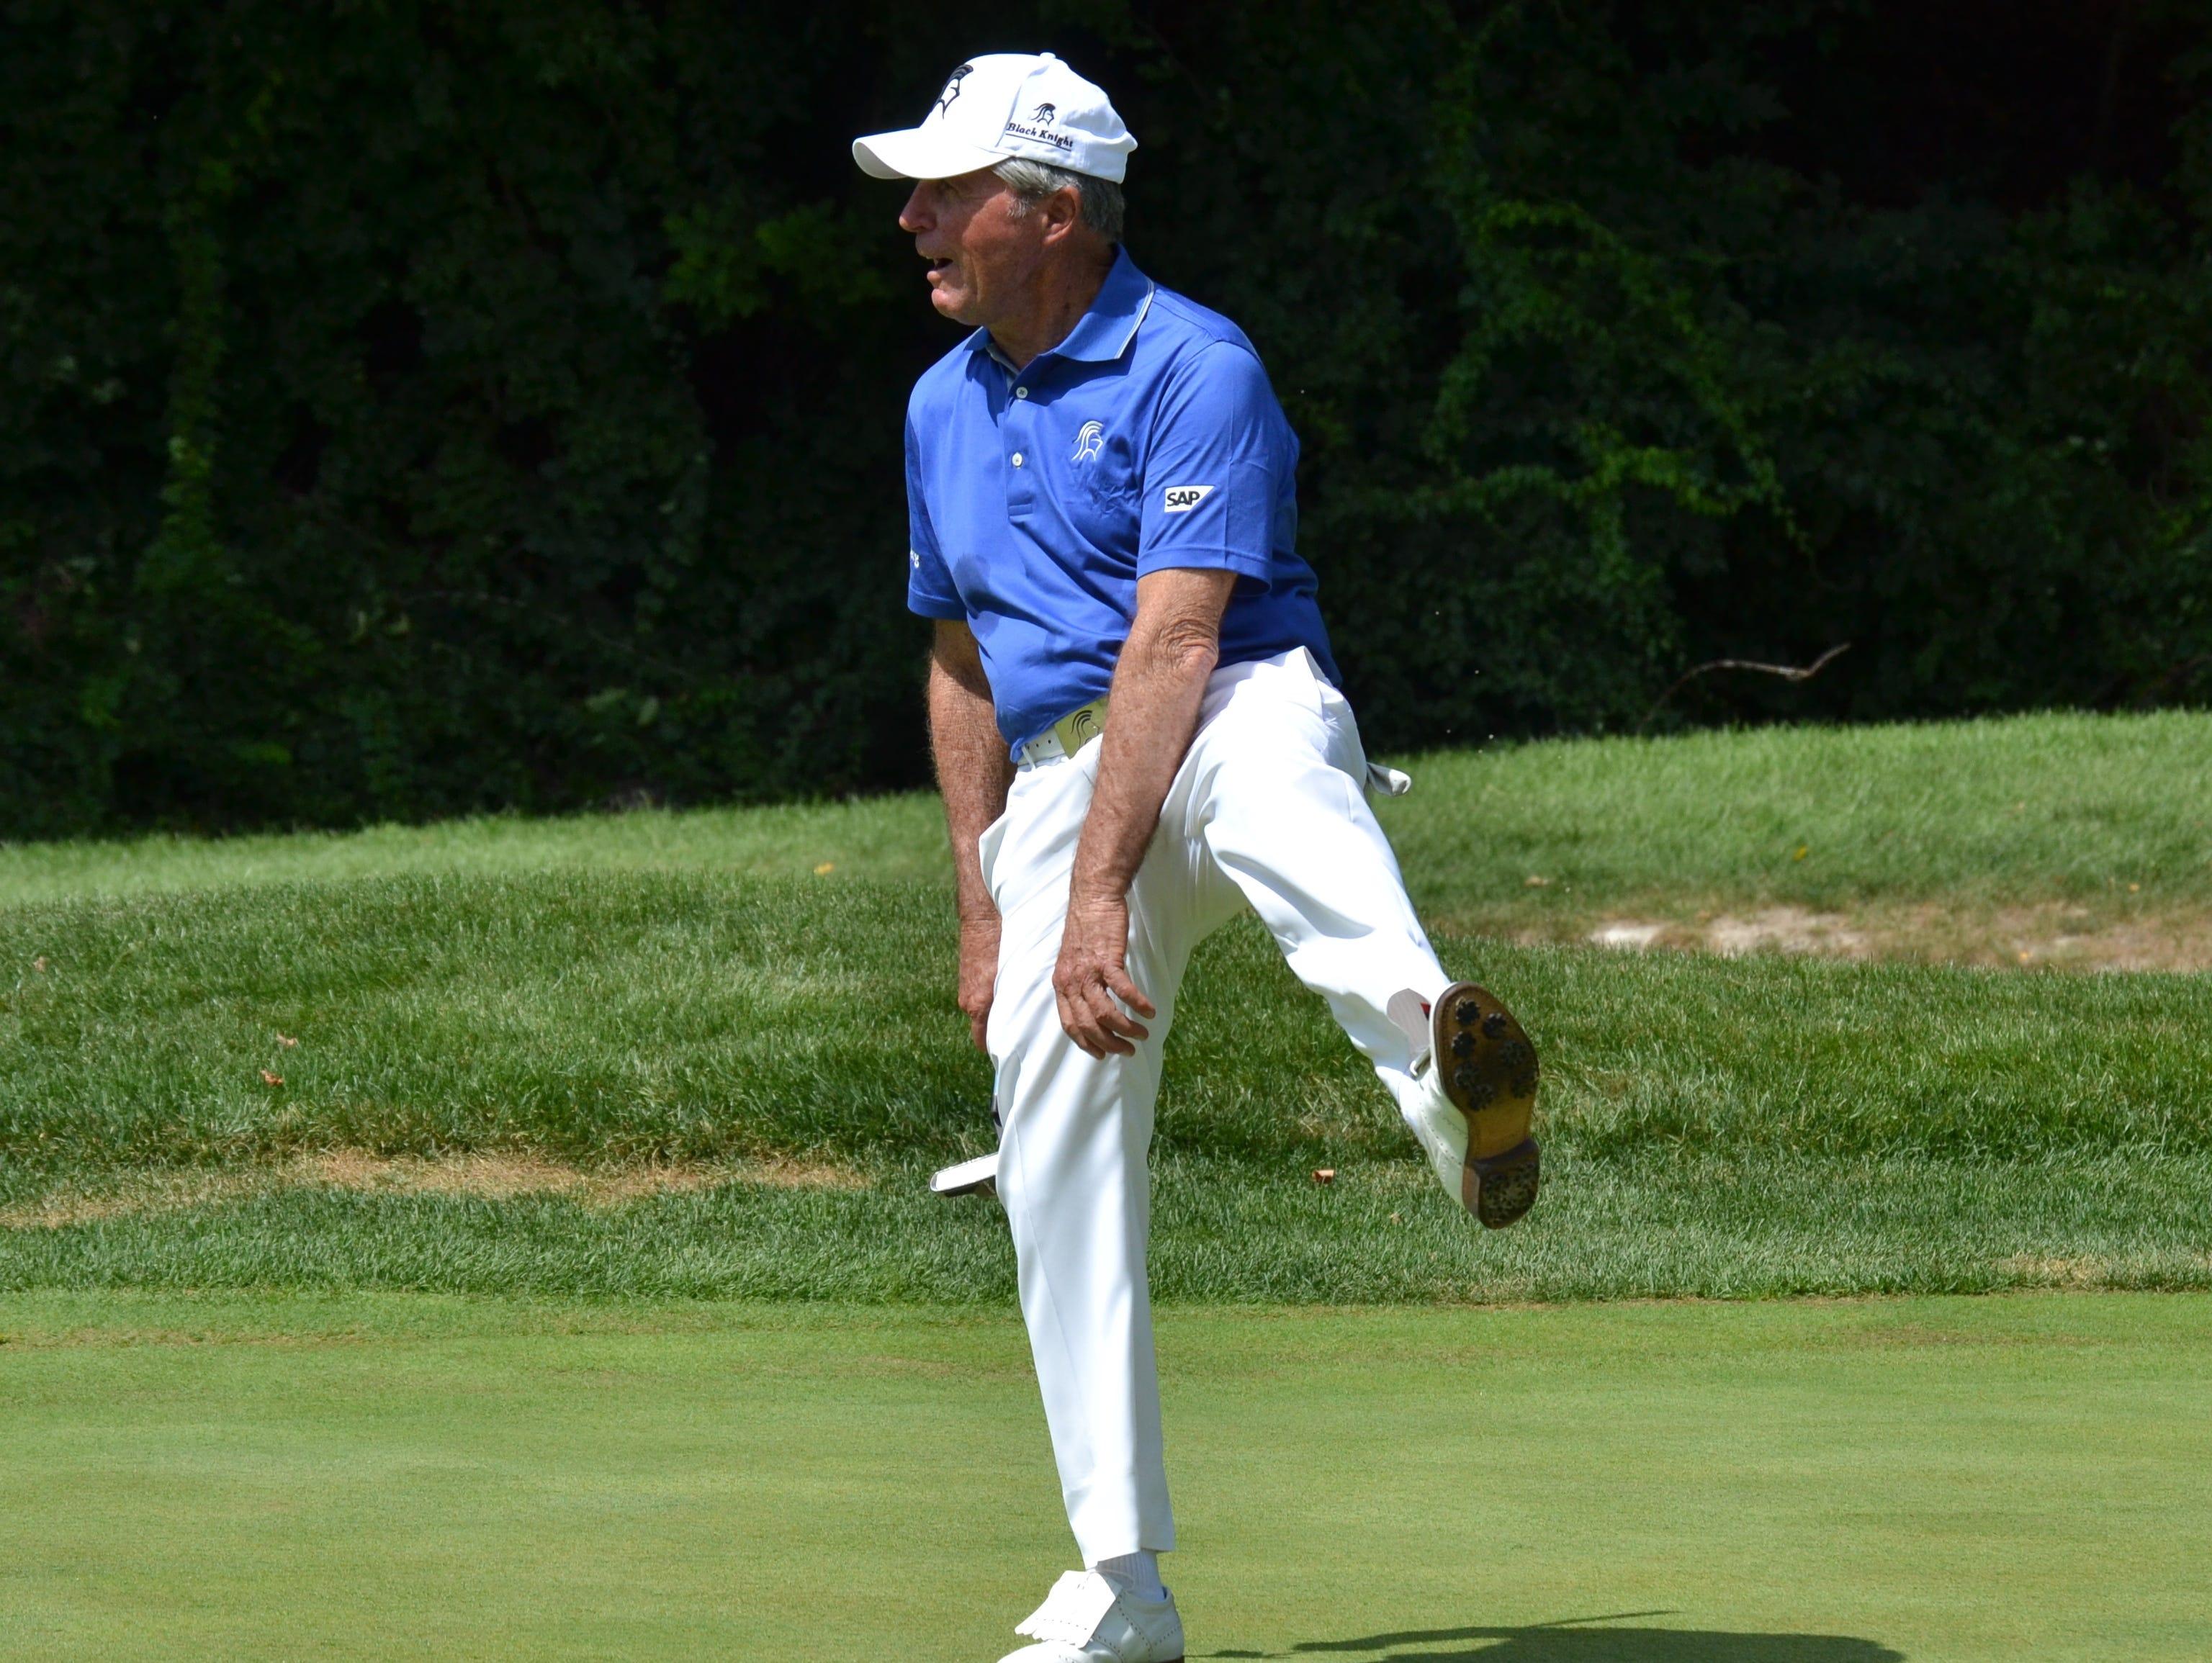 Gary Player reacts to a putt on the fourth green at GlenArbor that stopped one roll short of the hole Monday, August, 29, 2016. The 80-year-old was playing in his namesake invitational tournament, which benefits a number of children's charities.